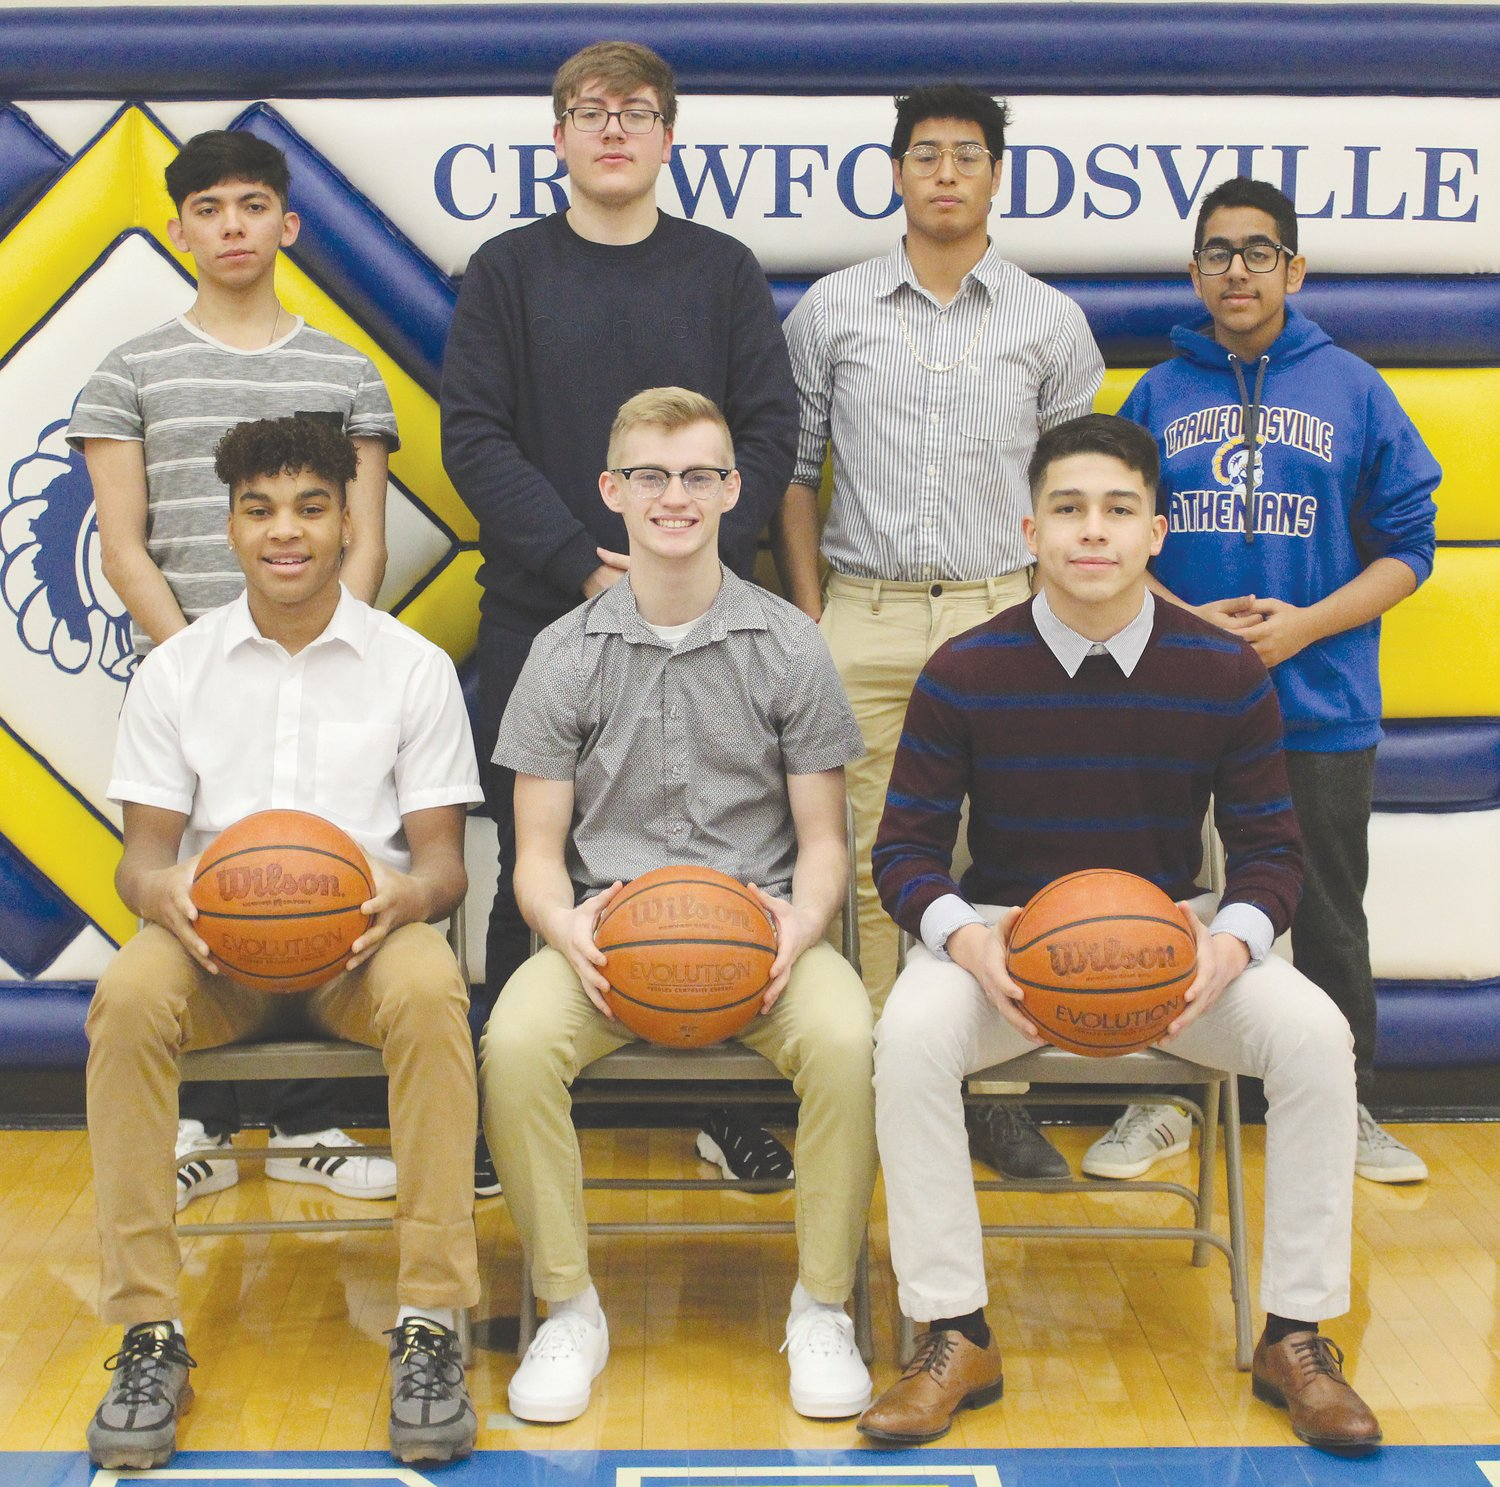 The 2020 Crawfordsville High School Snowcoming King candidates and attendants are pictured, from left, front row, freshman attendant Mikale Willis, junior attendant Andrew Martin, and sophomore attendant Edwin Gil Herrera; and back row, senior king candidates, Jesus Trevi